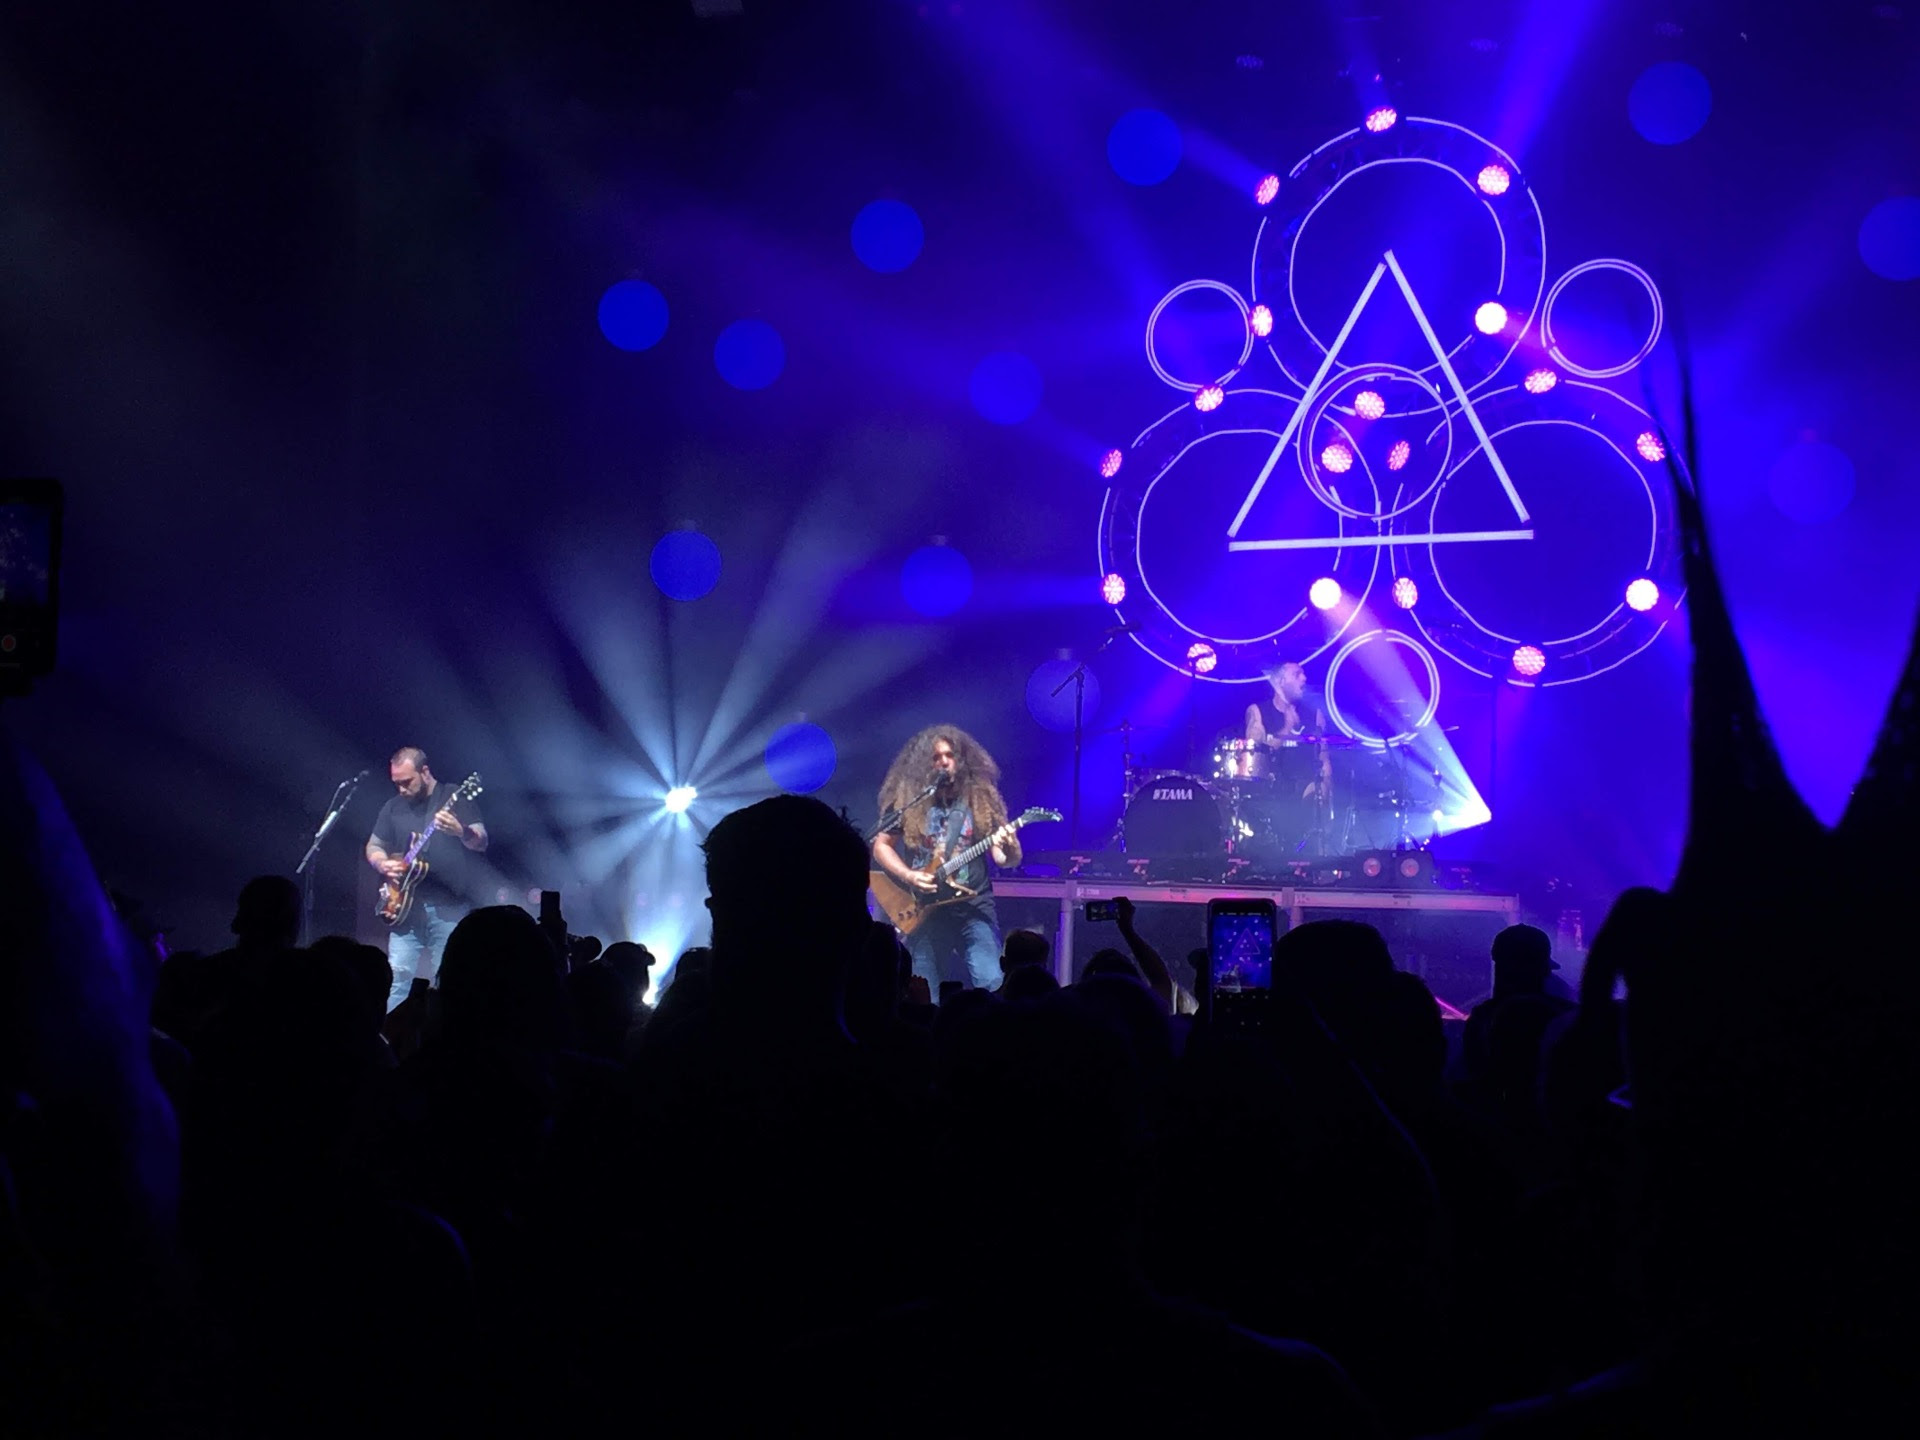 Cadence Bank Amphitheatre Section Pit R Row 13 Seat 10 Coheed